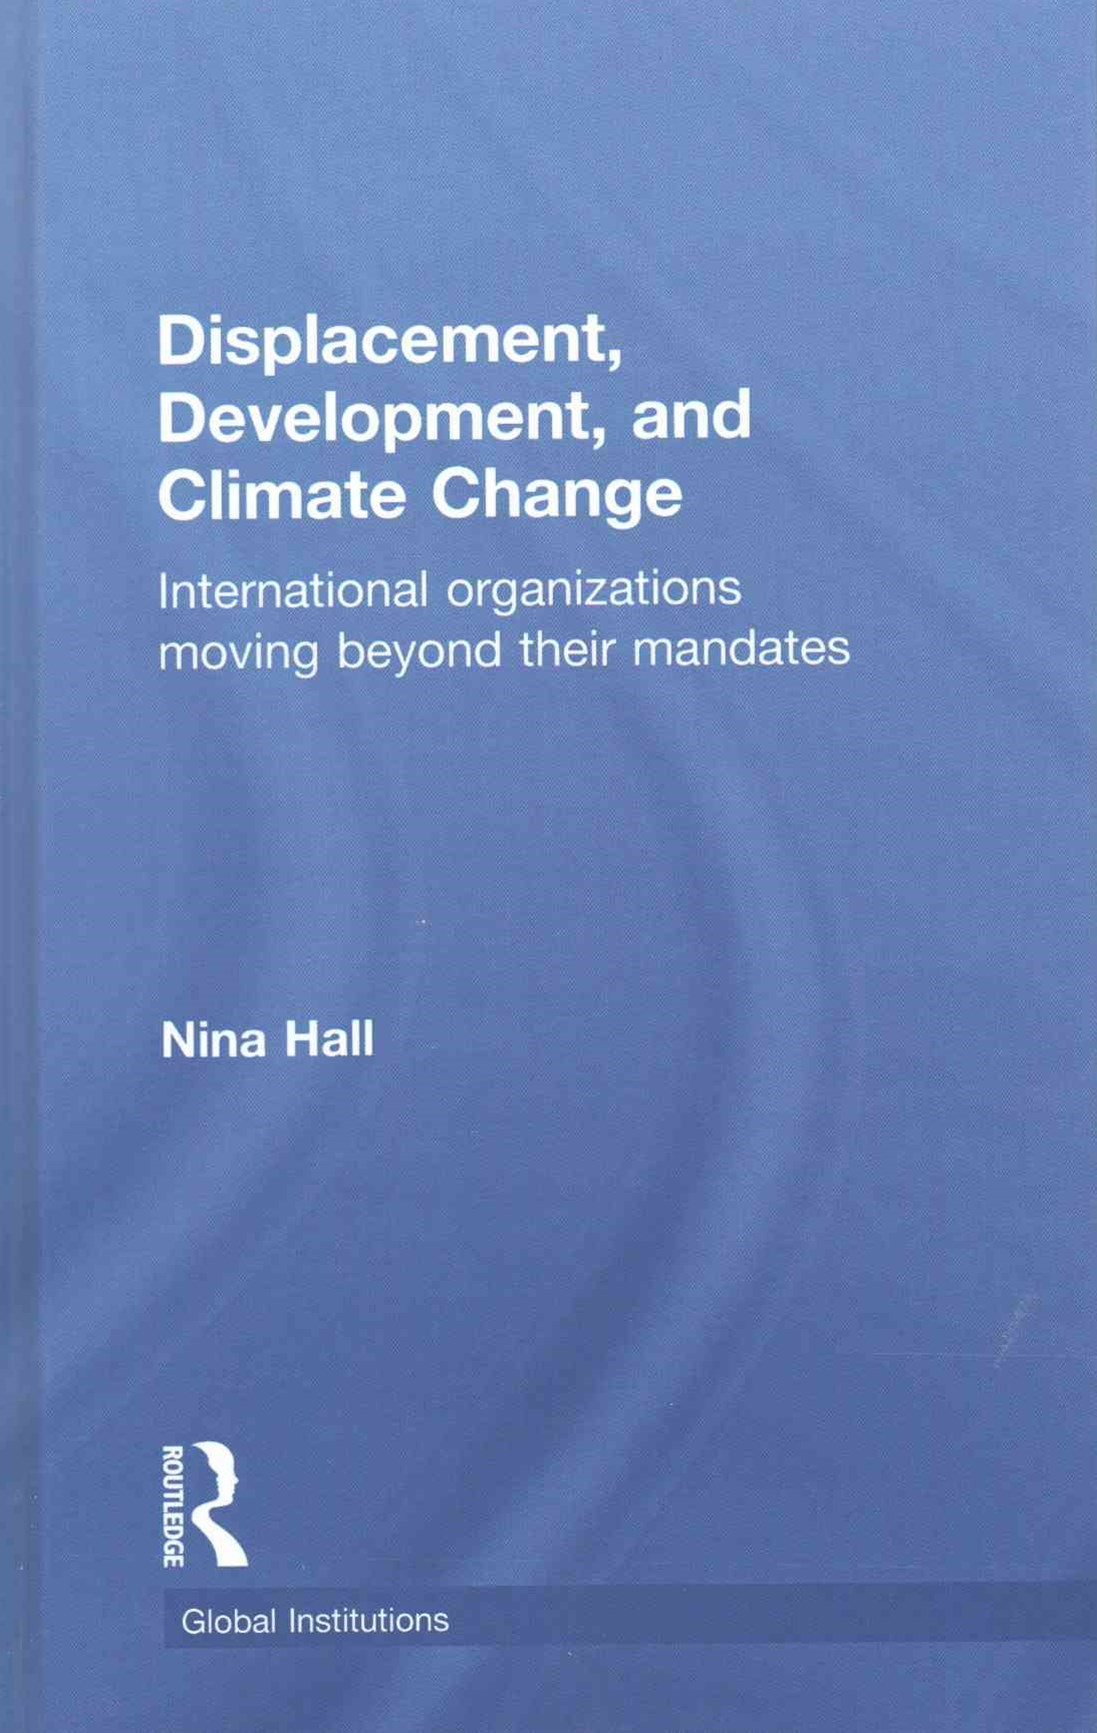 Displacement, Development, and Climate Change